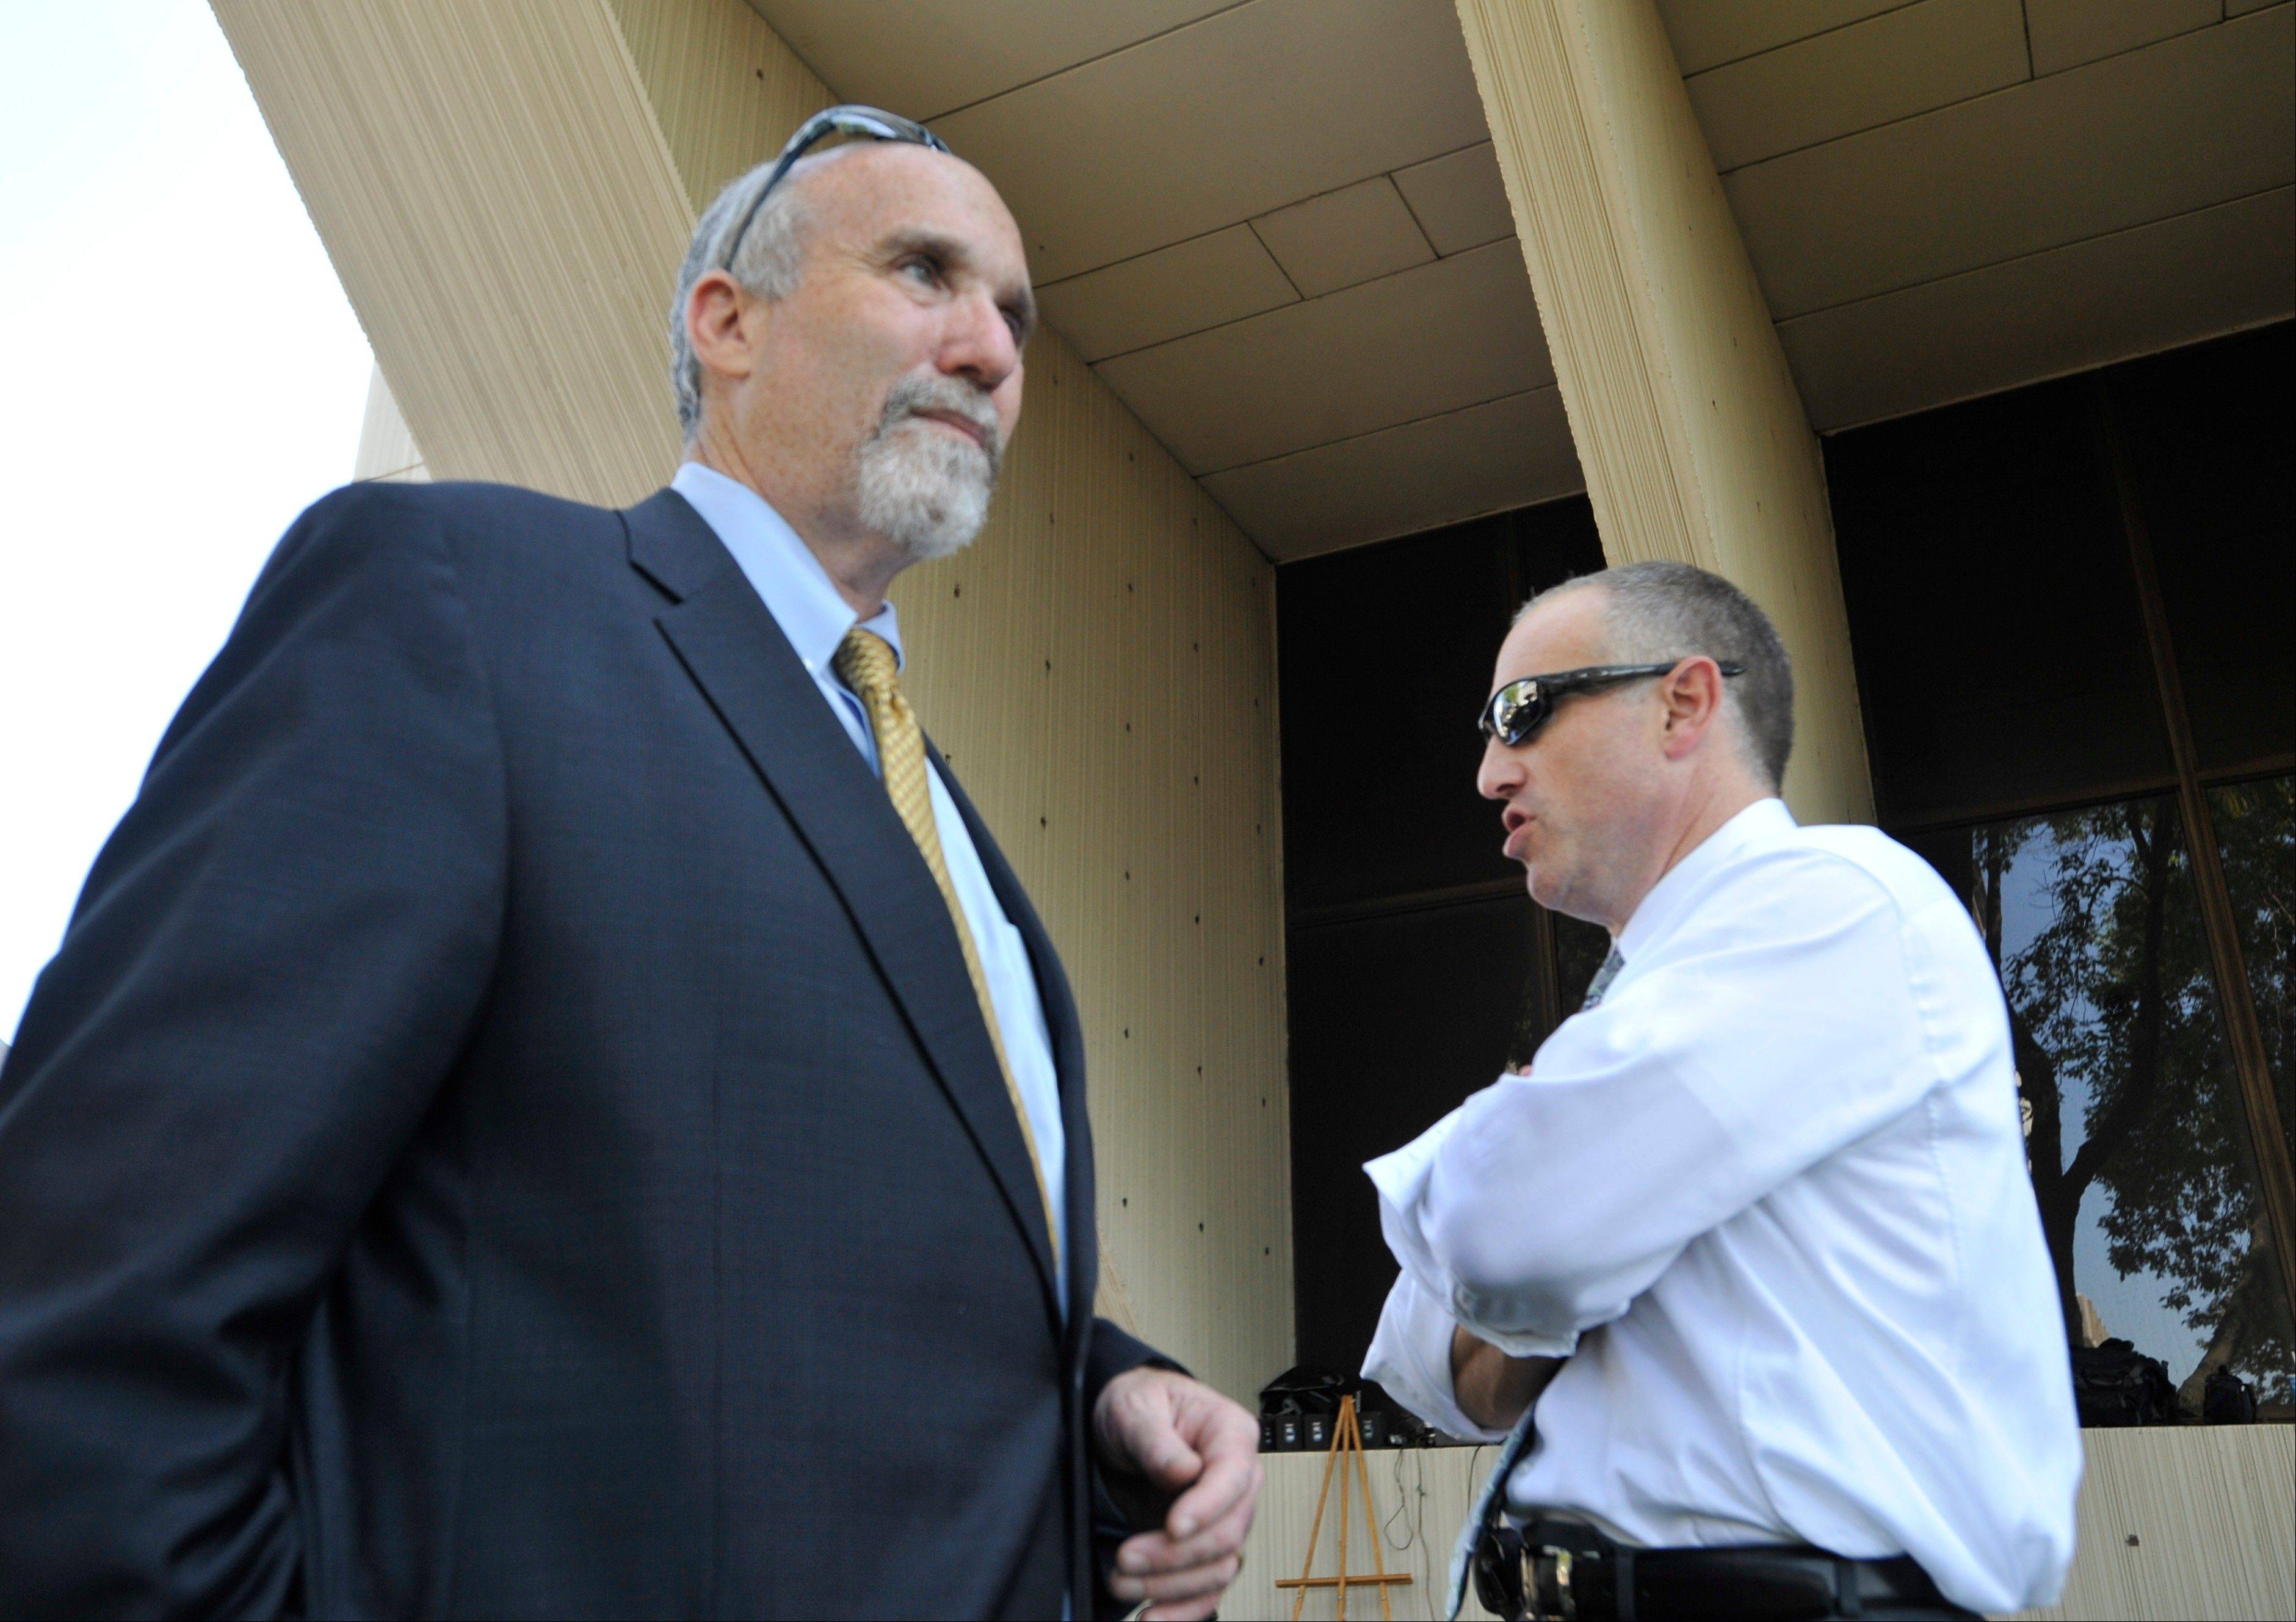 Attorneys Joel Brodsky, left, and Steven Greenberg confer outside the Will County courthouse during the second day of jury deliberations in Drew Peterson's murder trial last September. Now Brodsky has filed a defamation suit against Greenberg, who says Brodsky did a shoddy job of defending Peterson.